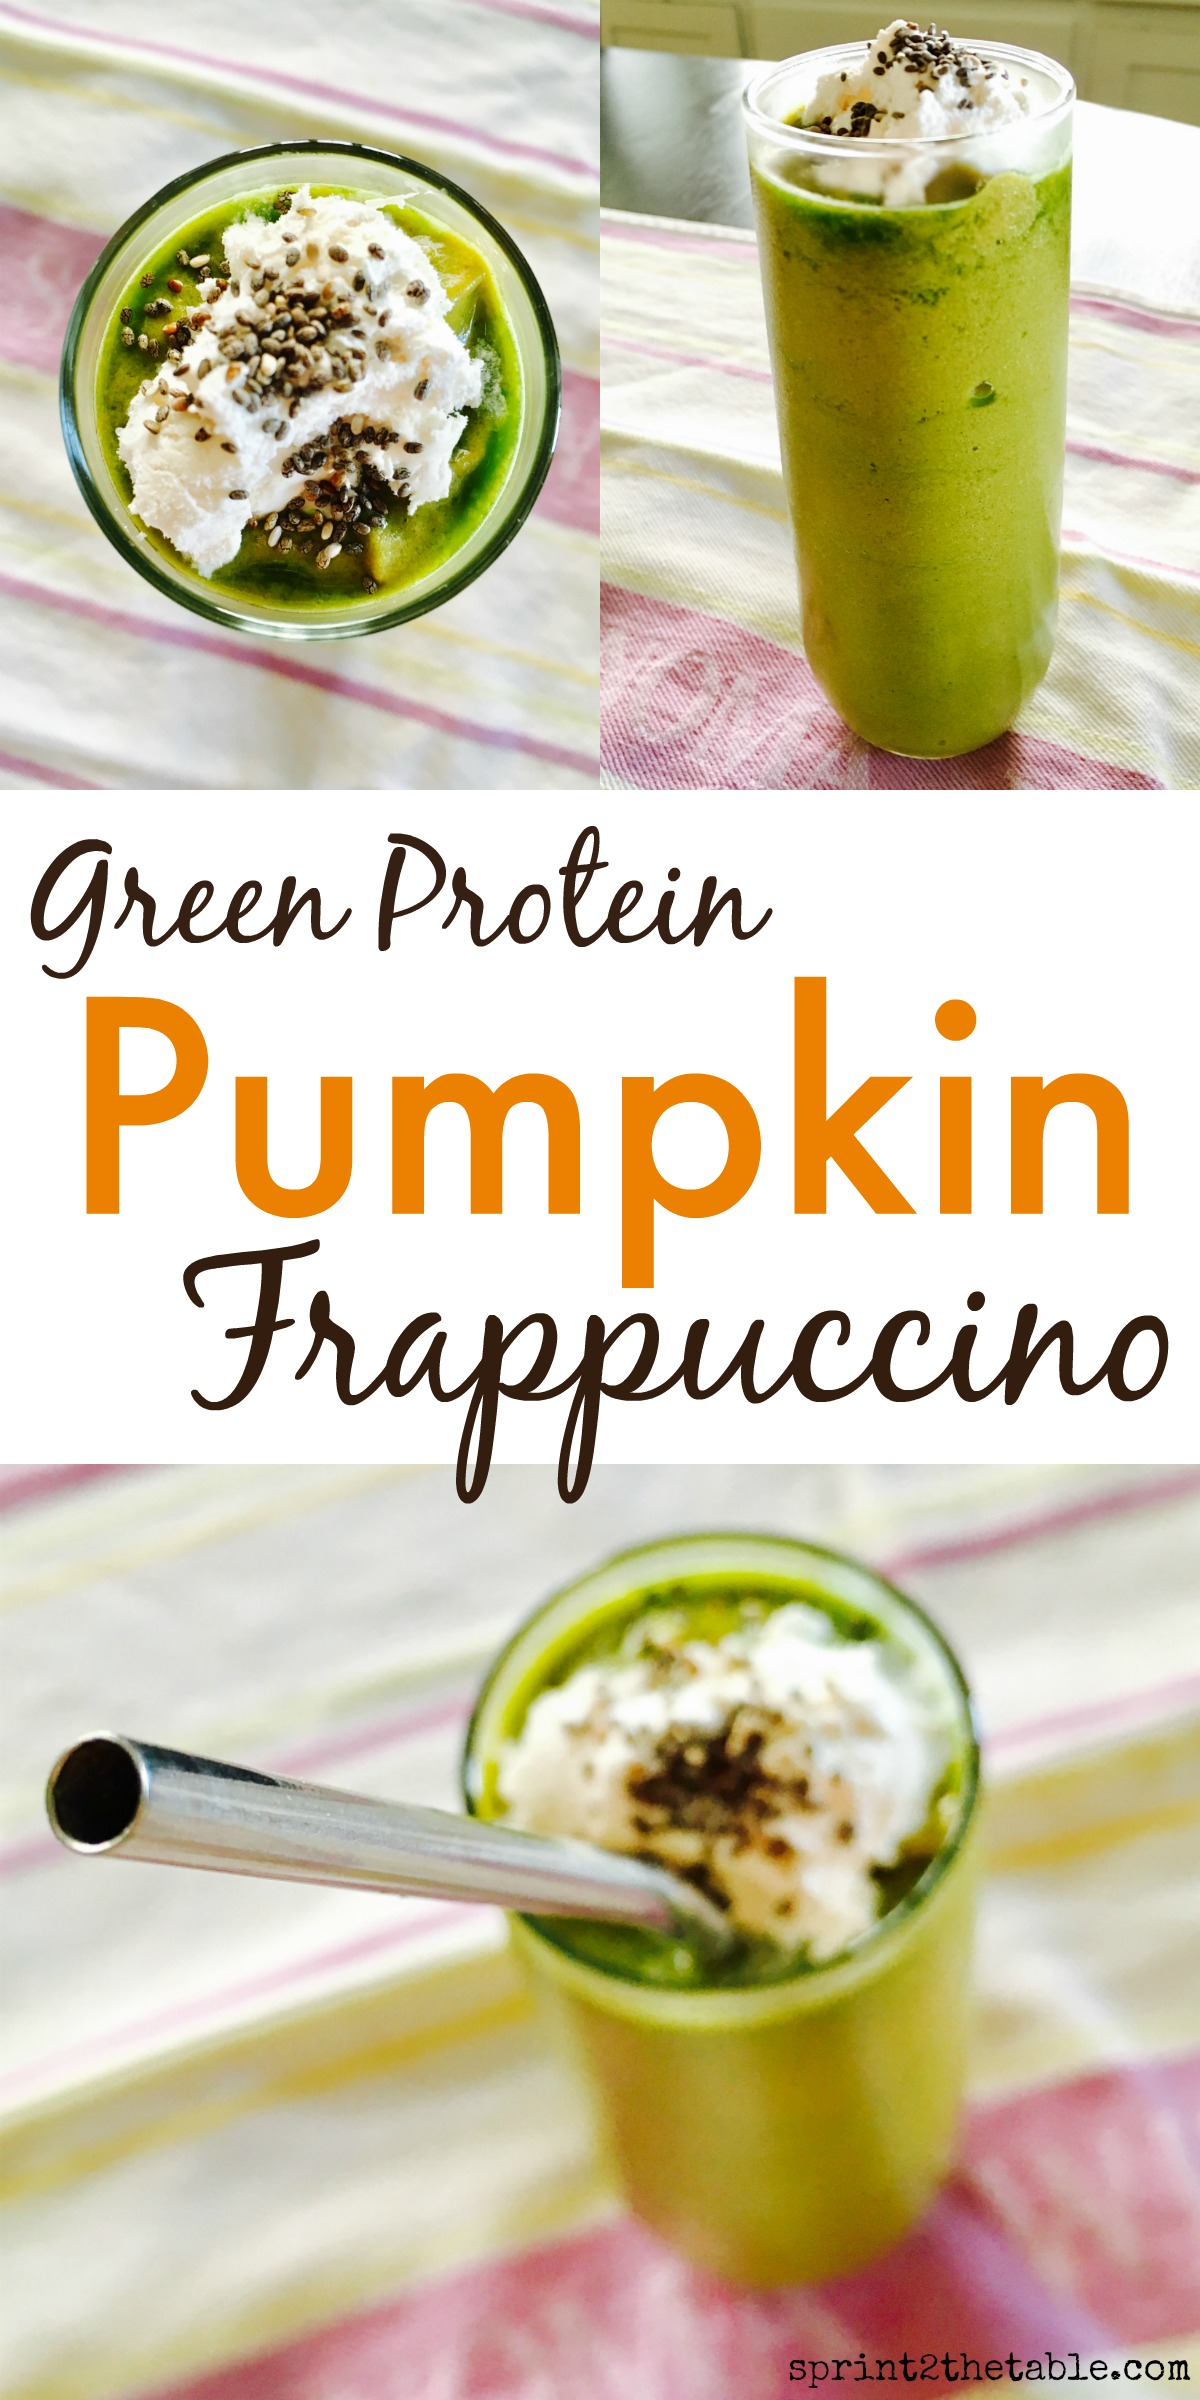 This protein-filled Pumpkin Frappuccino is perfect a post-workout snack any time of year!